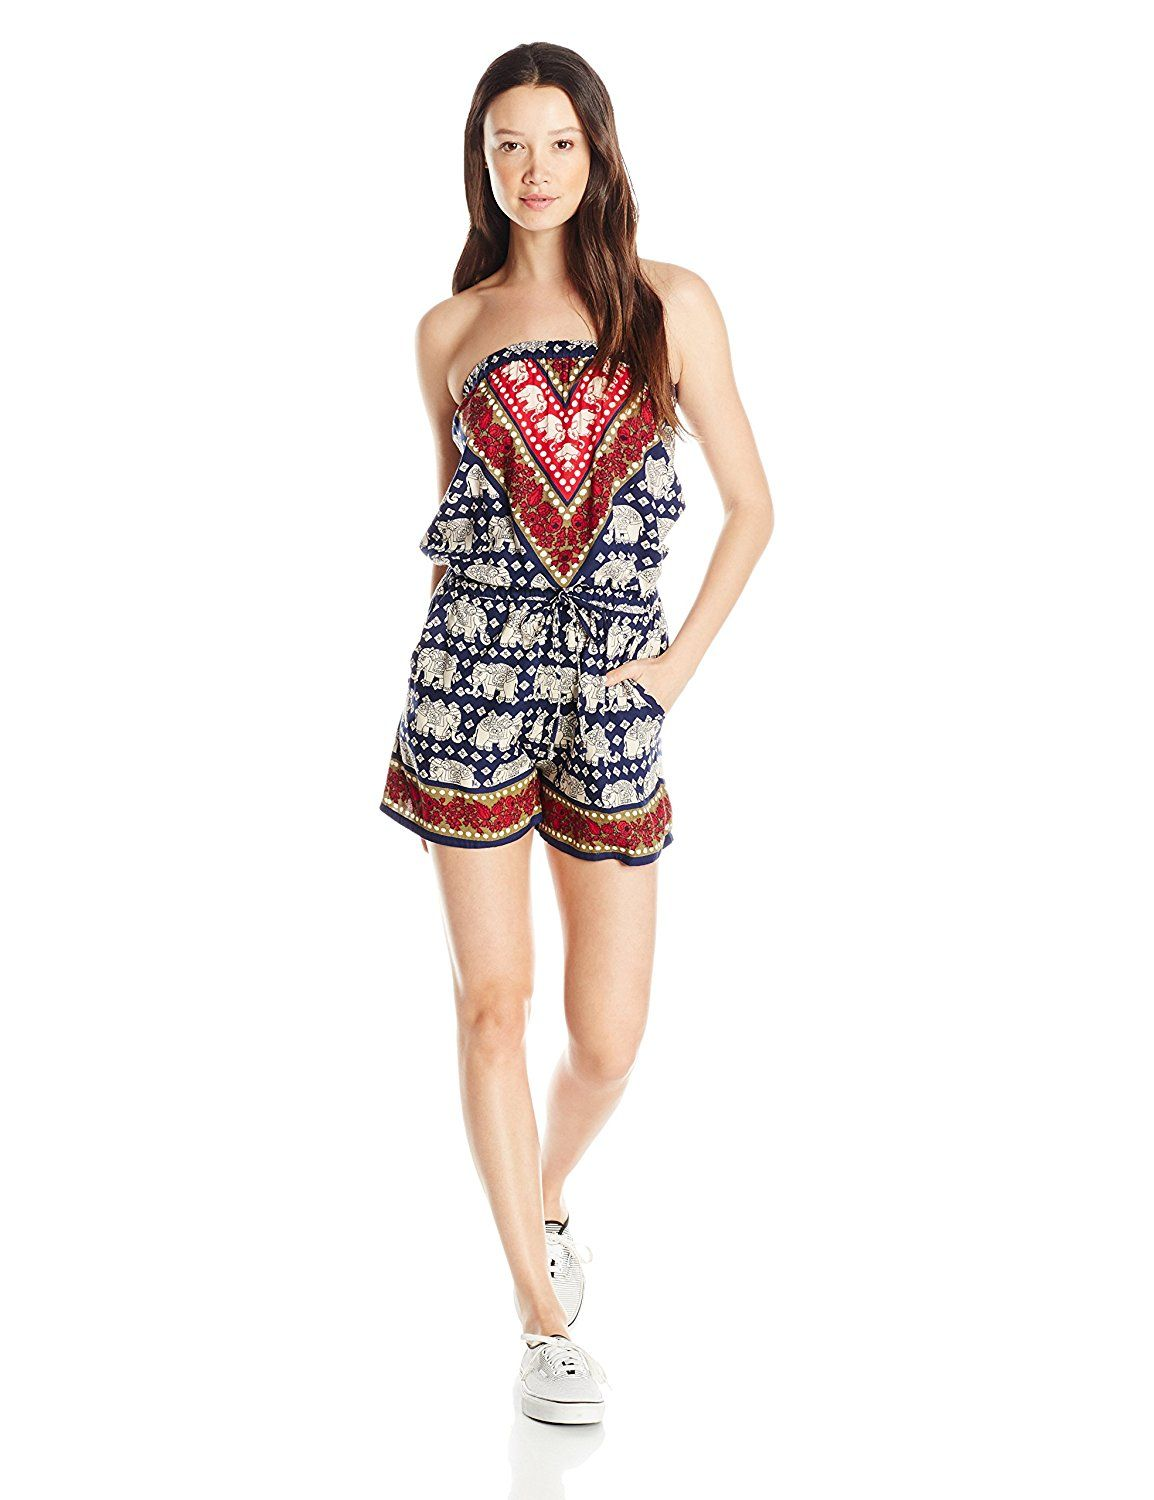 Angie Women's Elephant Print Romper ** This is an Amazon